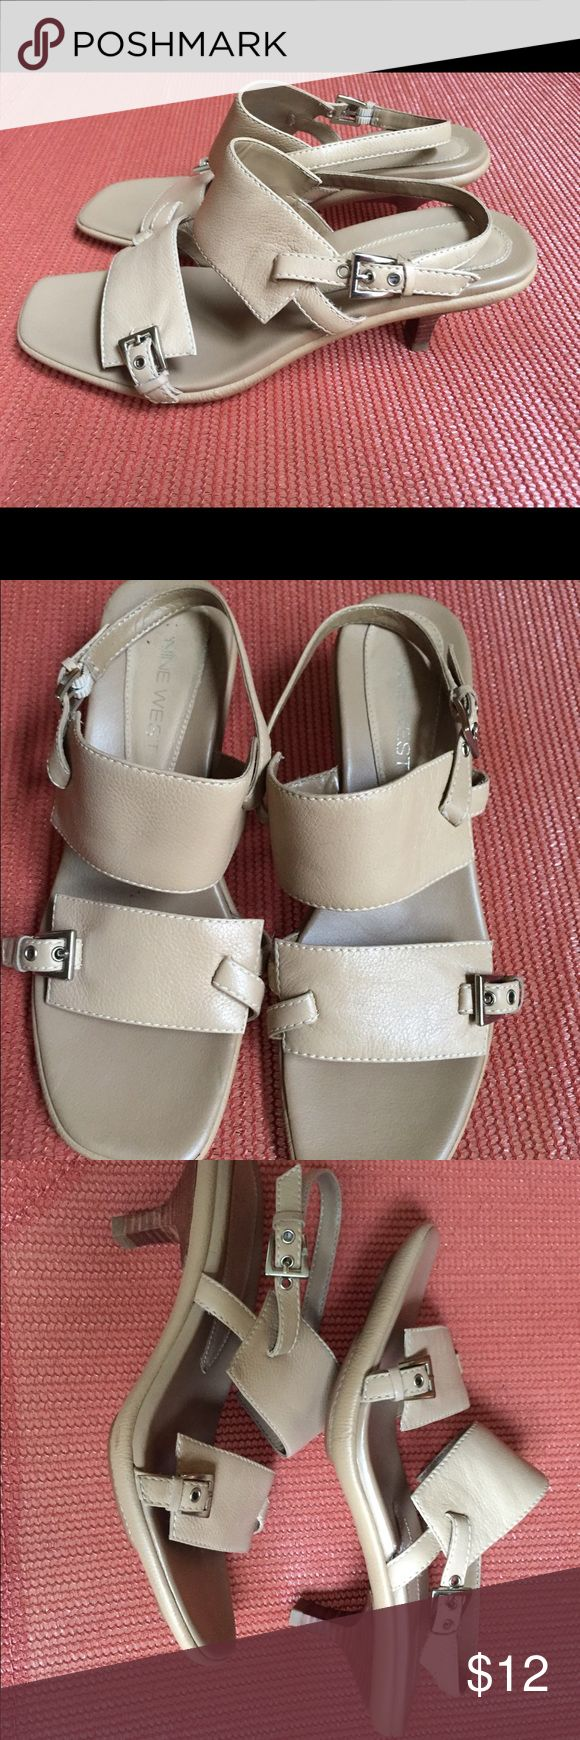 Nine West size 8 taupe color sandals.  Very comfy! Perfect neutral sandals to pair up with just about any outfit.  Size 8. Very comfy!  Great condition. Nine West Shoes Sandals